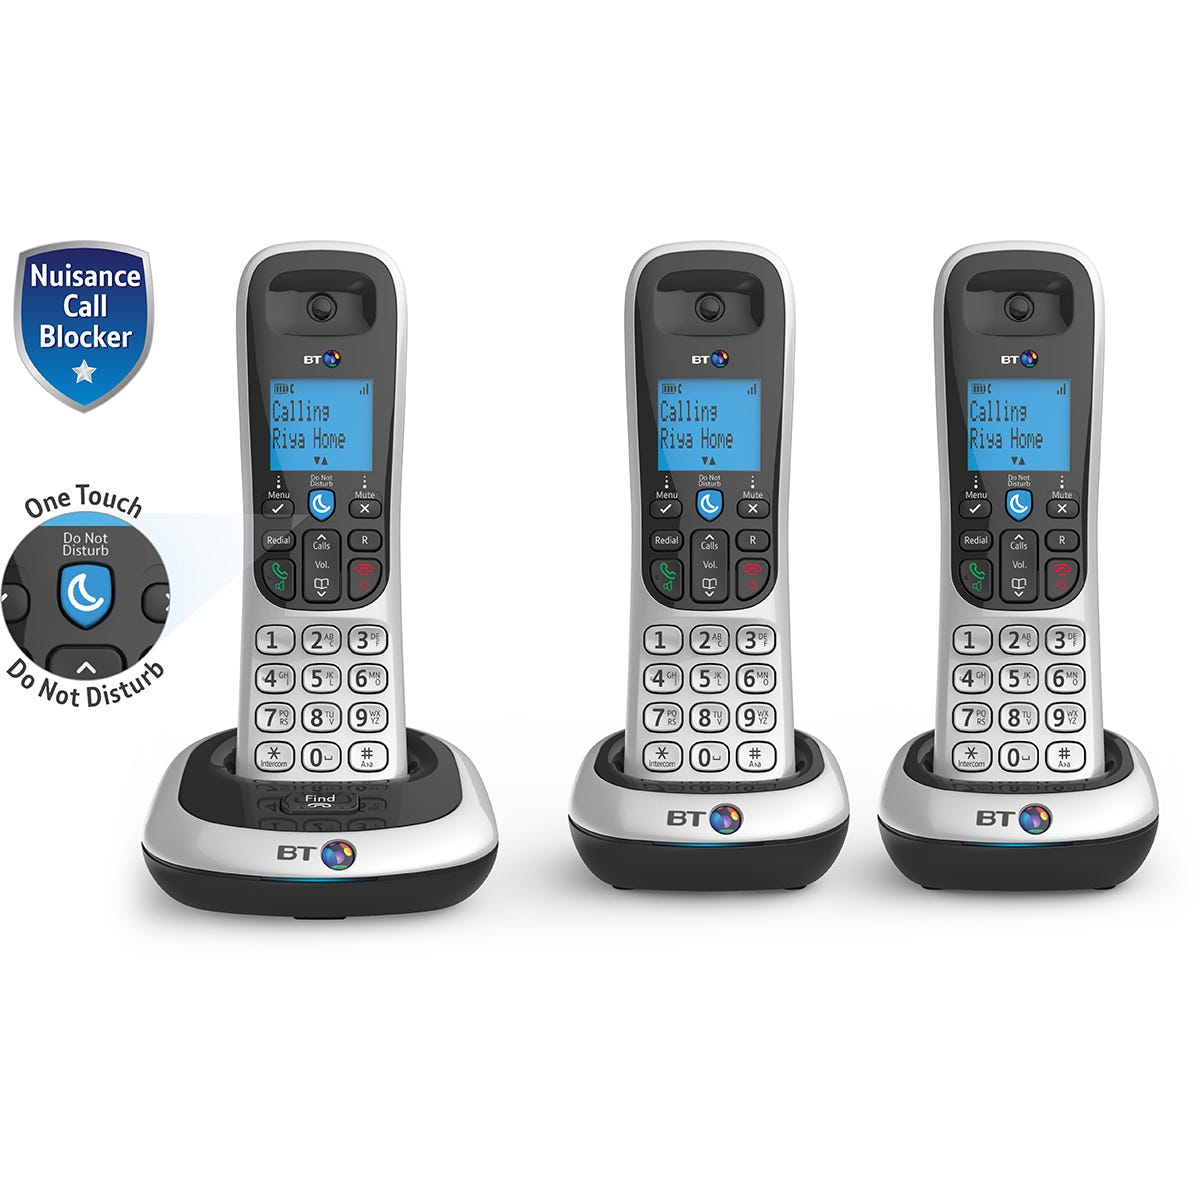 Bt 2200 Cordless DECT Phone with Nuisanace Call Blocker - Trio